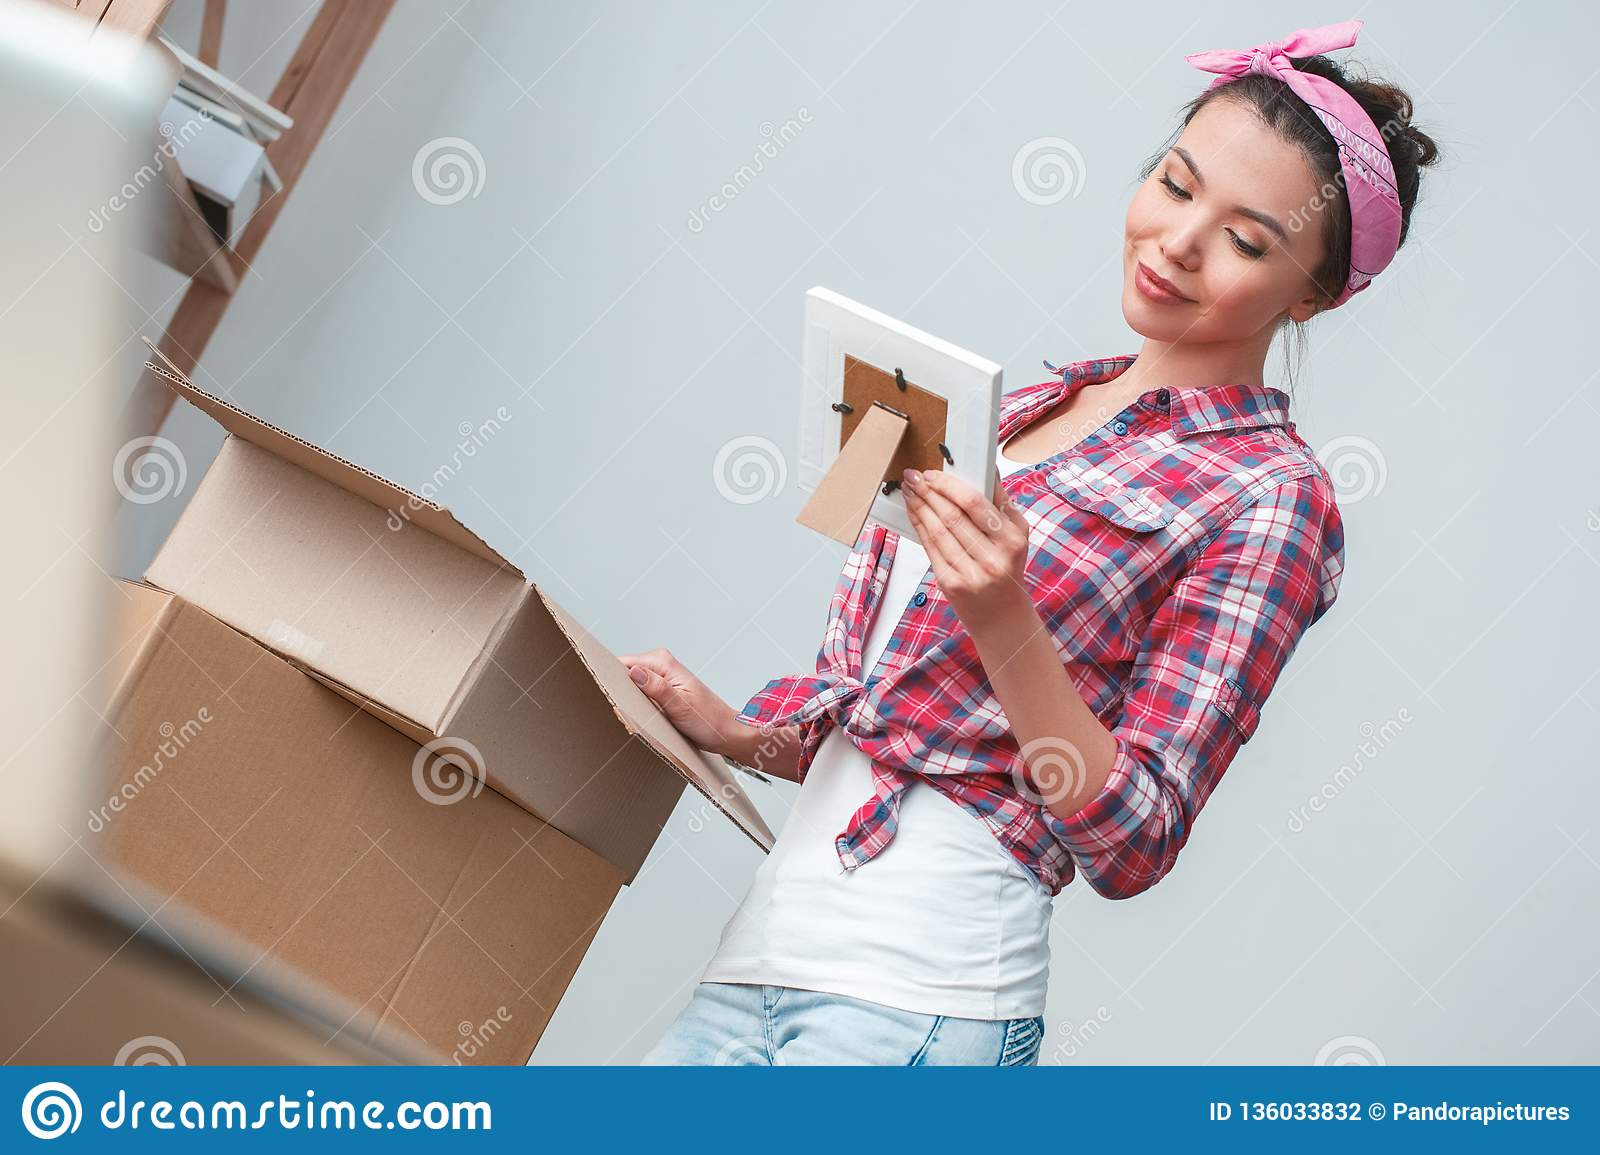 Young girl moving to new place standing packing things looking at photo smiling nostalgic